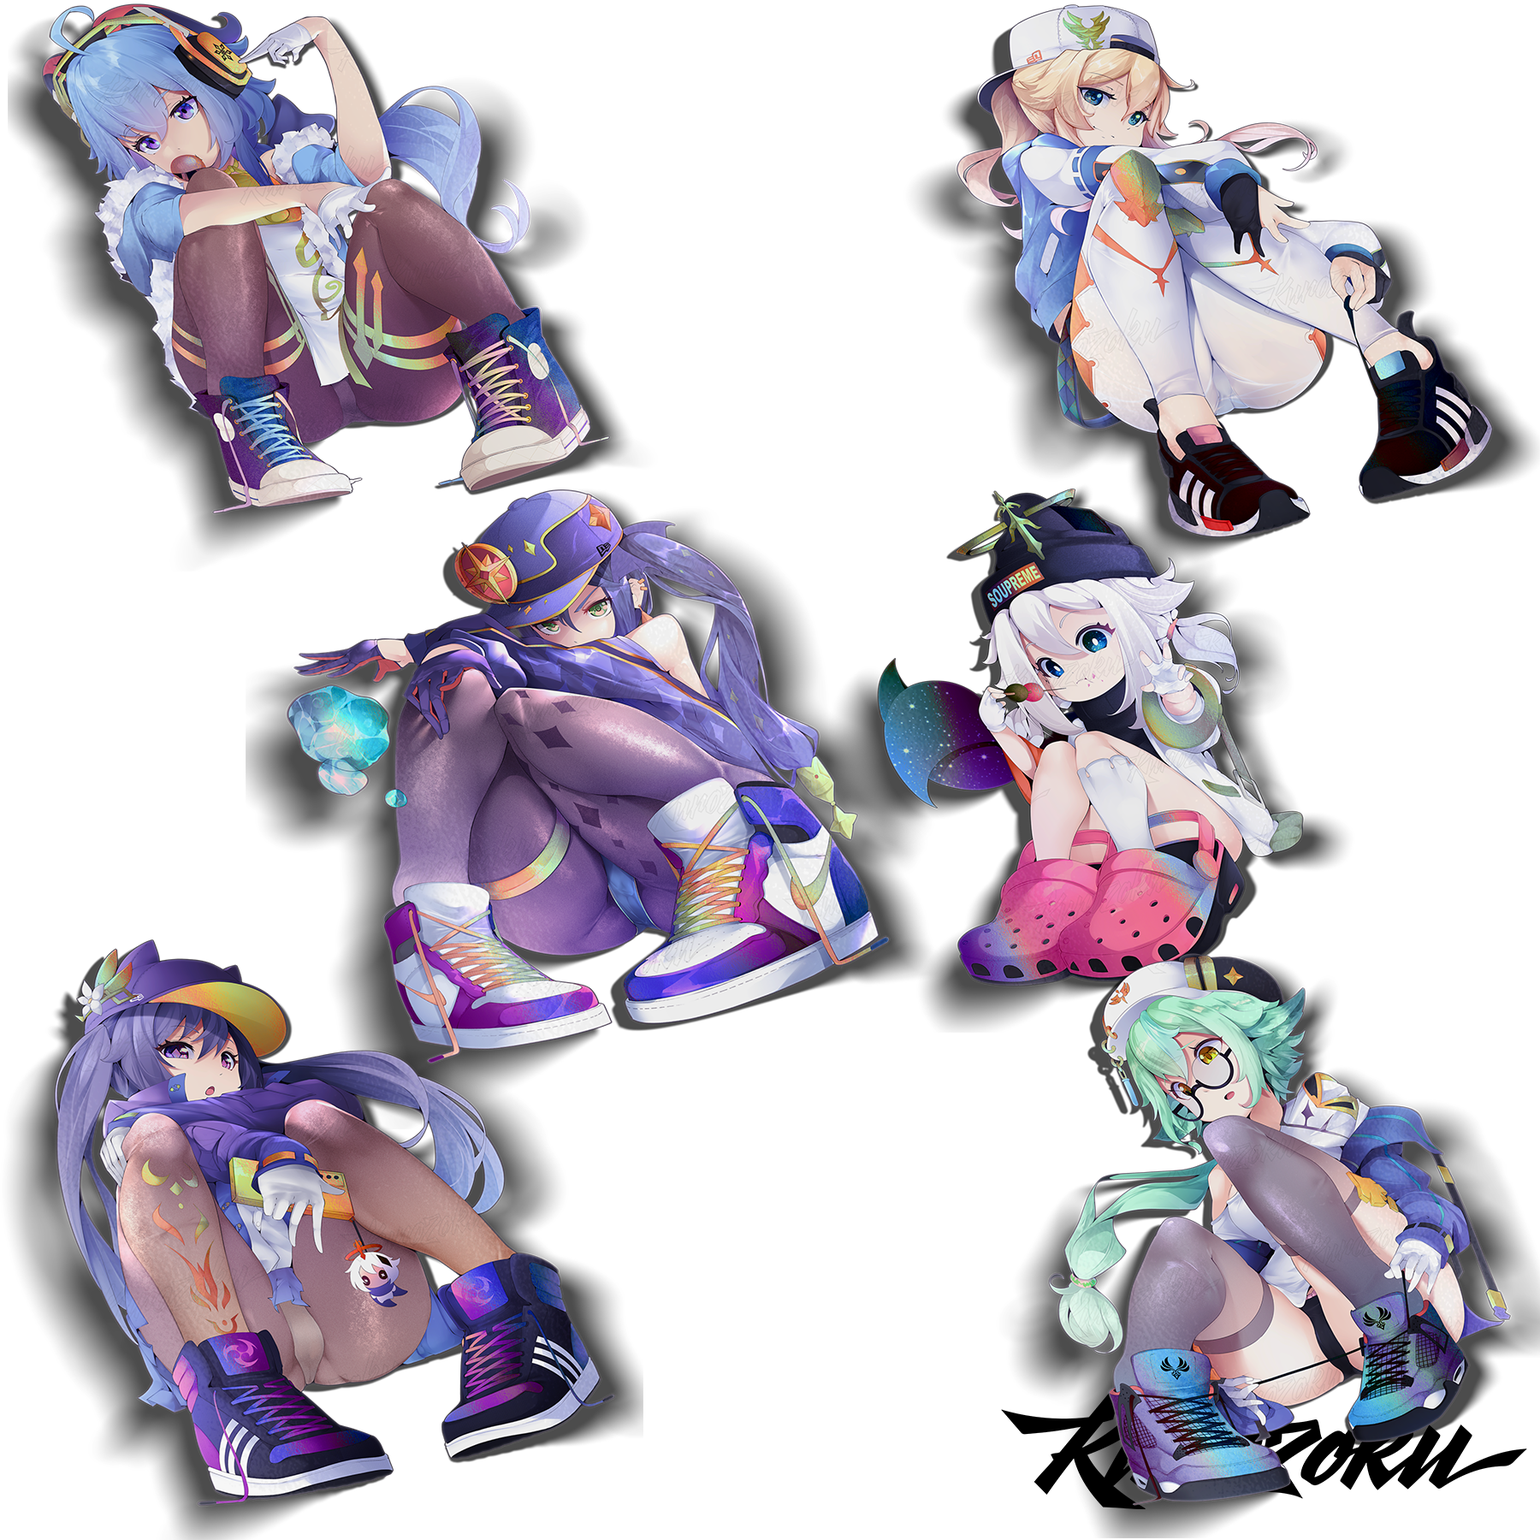 Image of Partial Holo Street Genshin Girls